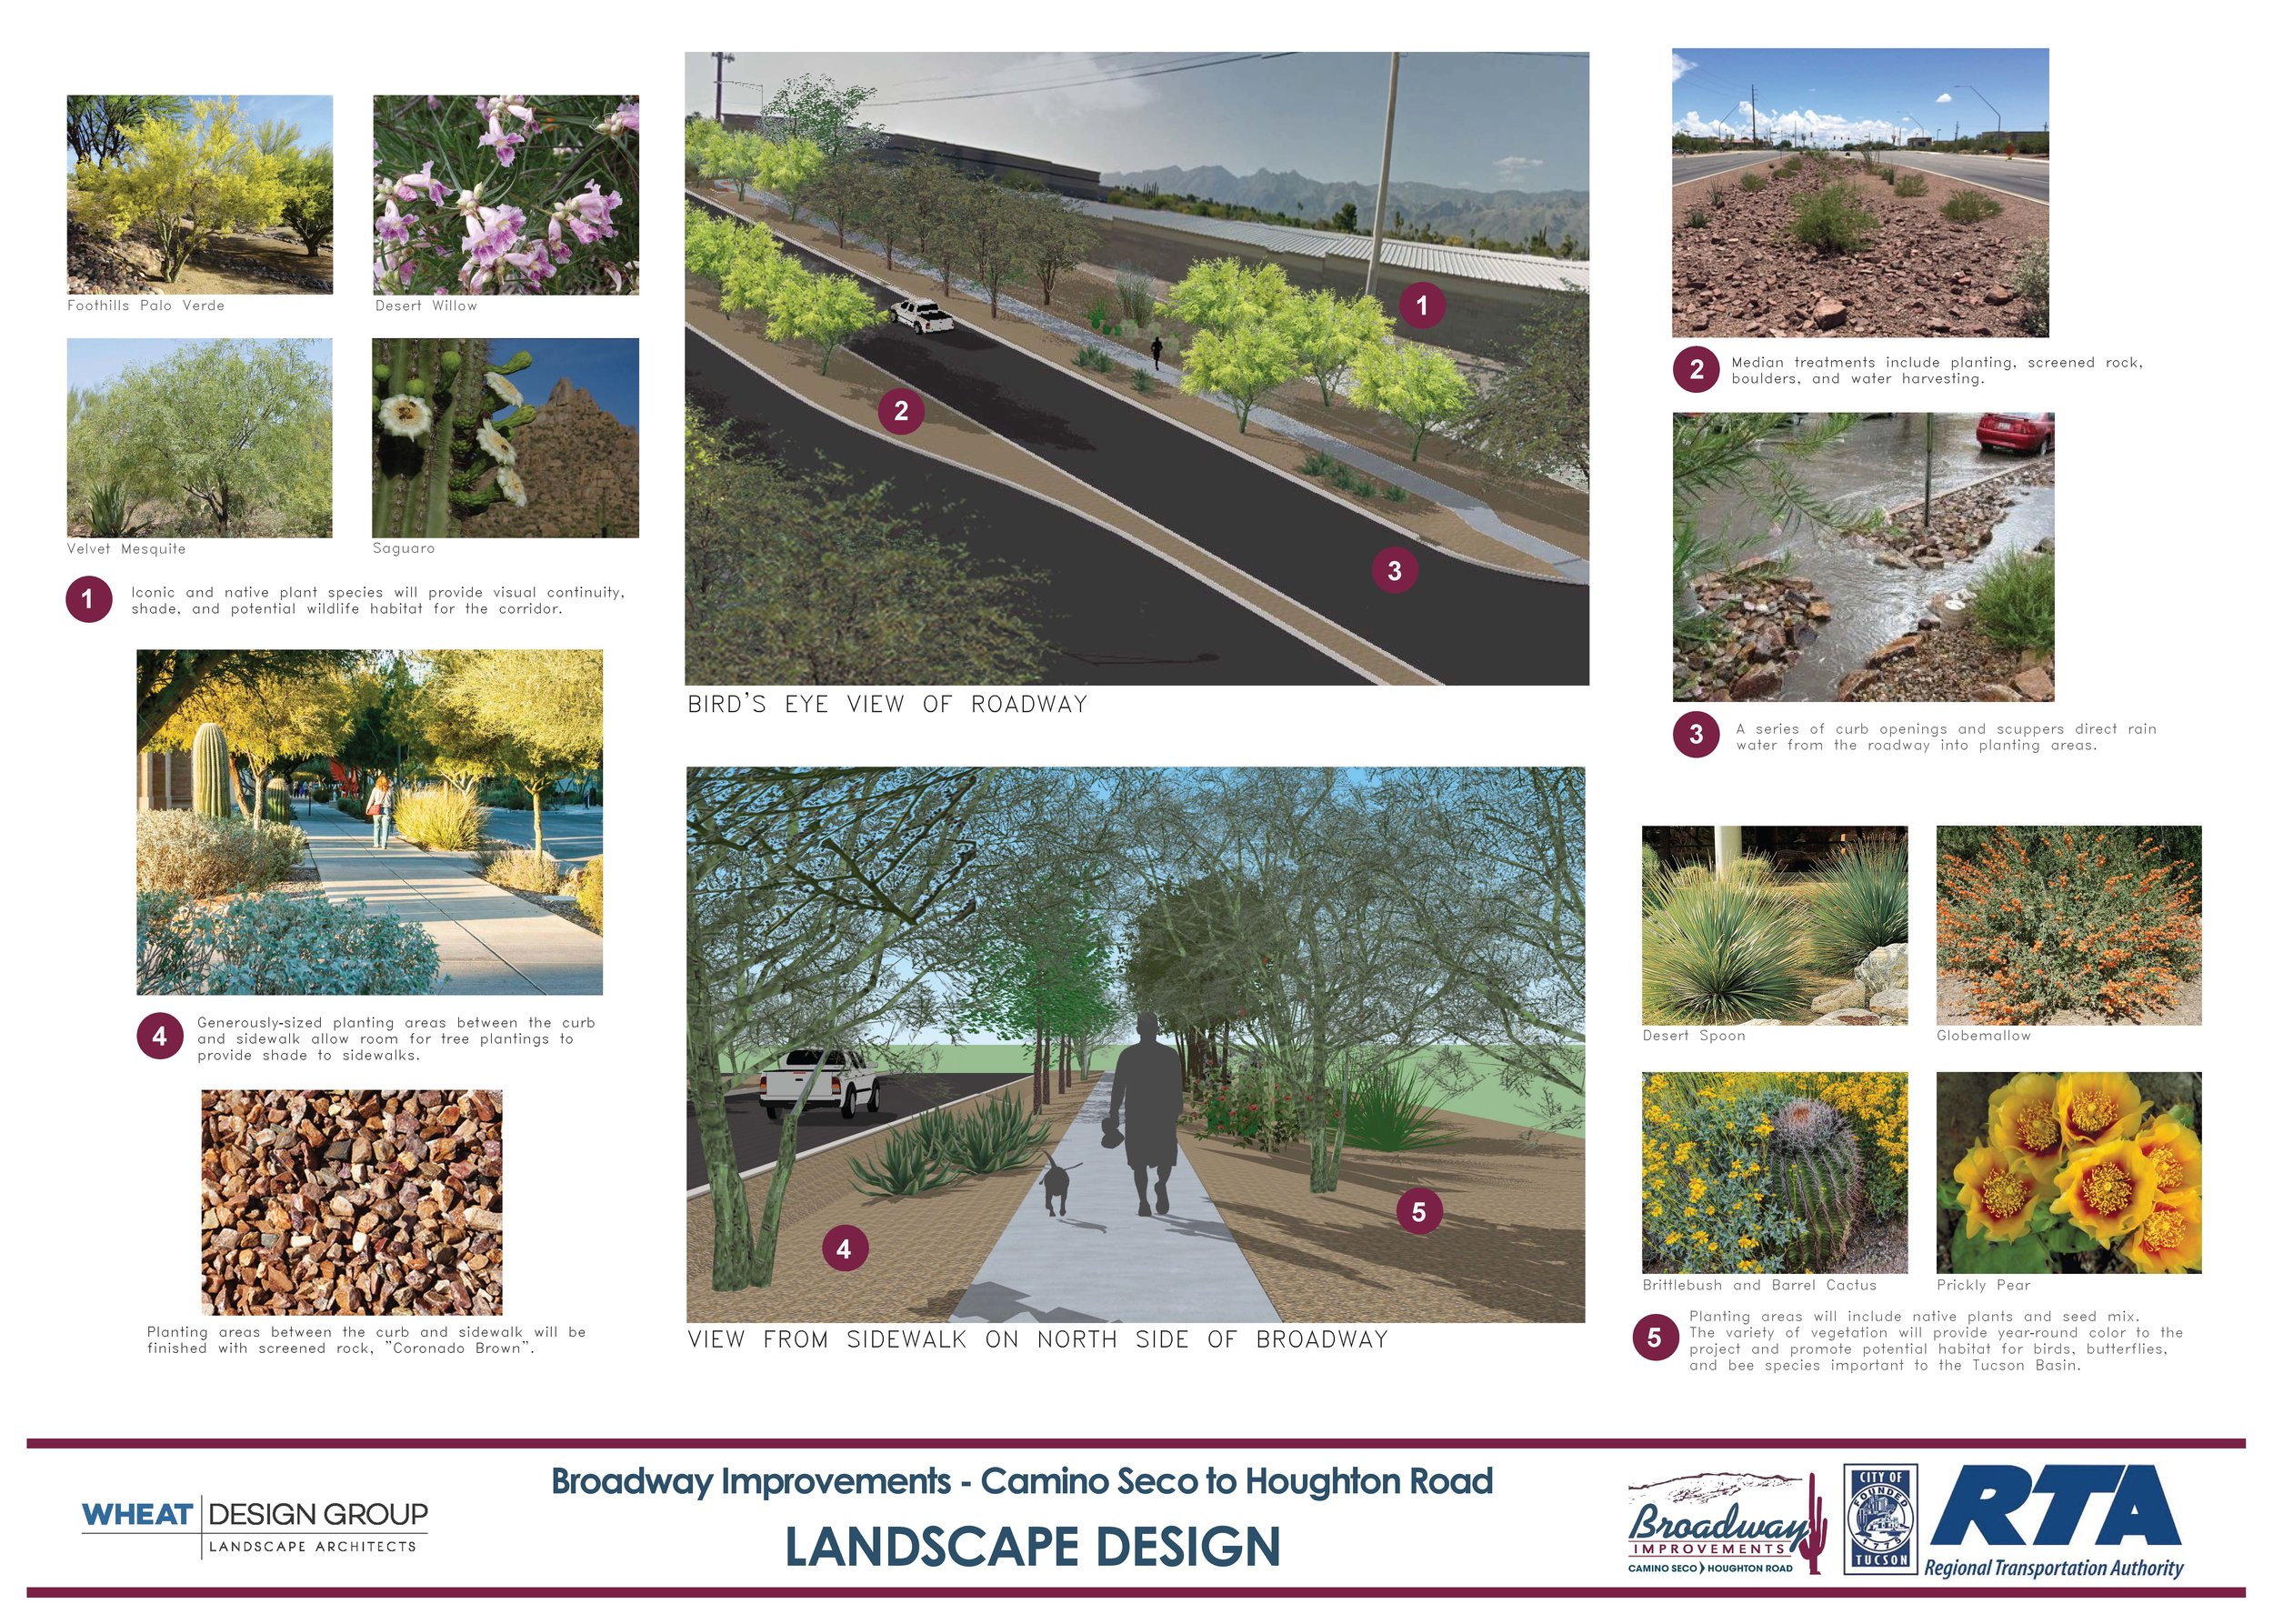 WDG created boards for an Open House that helped the community visualize the roadway design. Material palettes for plant and groundcover help to understand the finer details of the project, and also help our team picture how the materials will look as a whole.